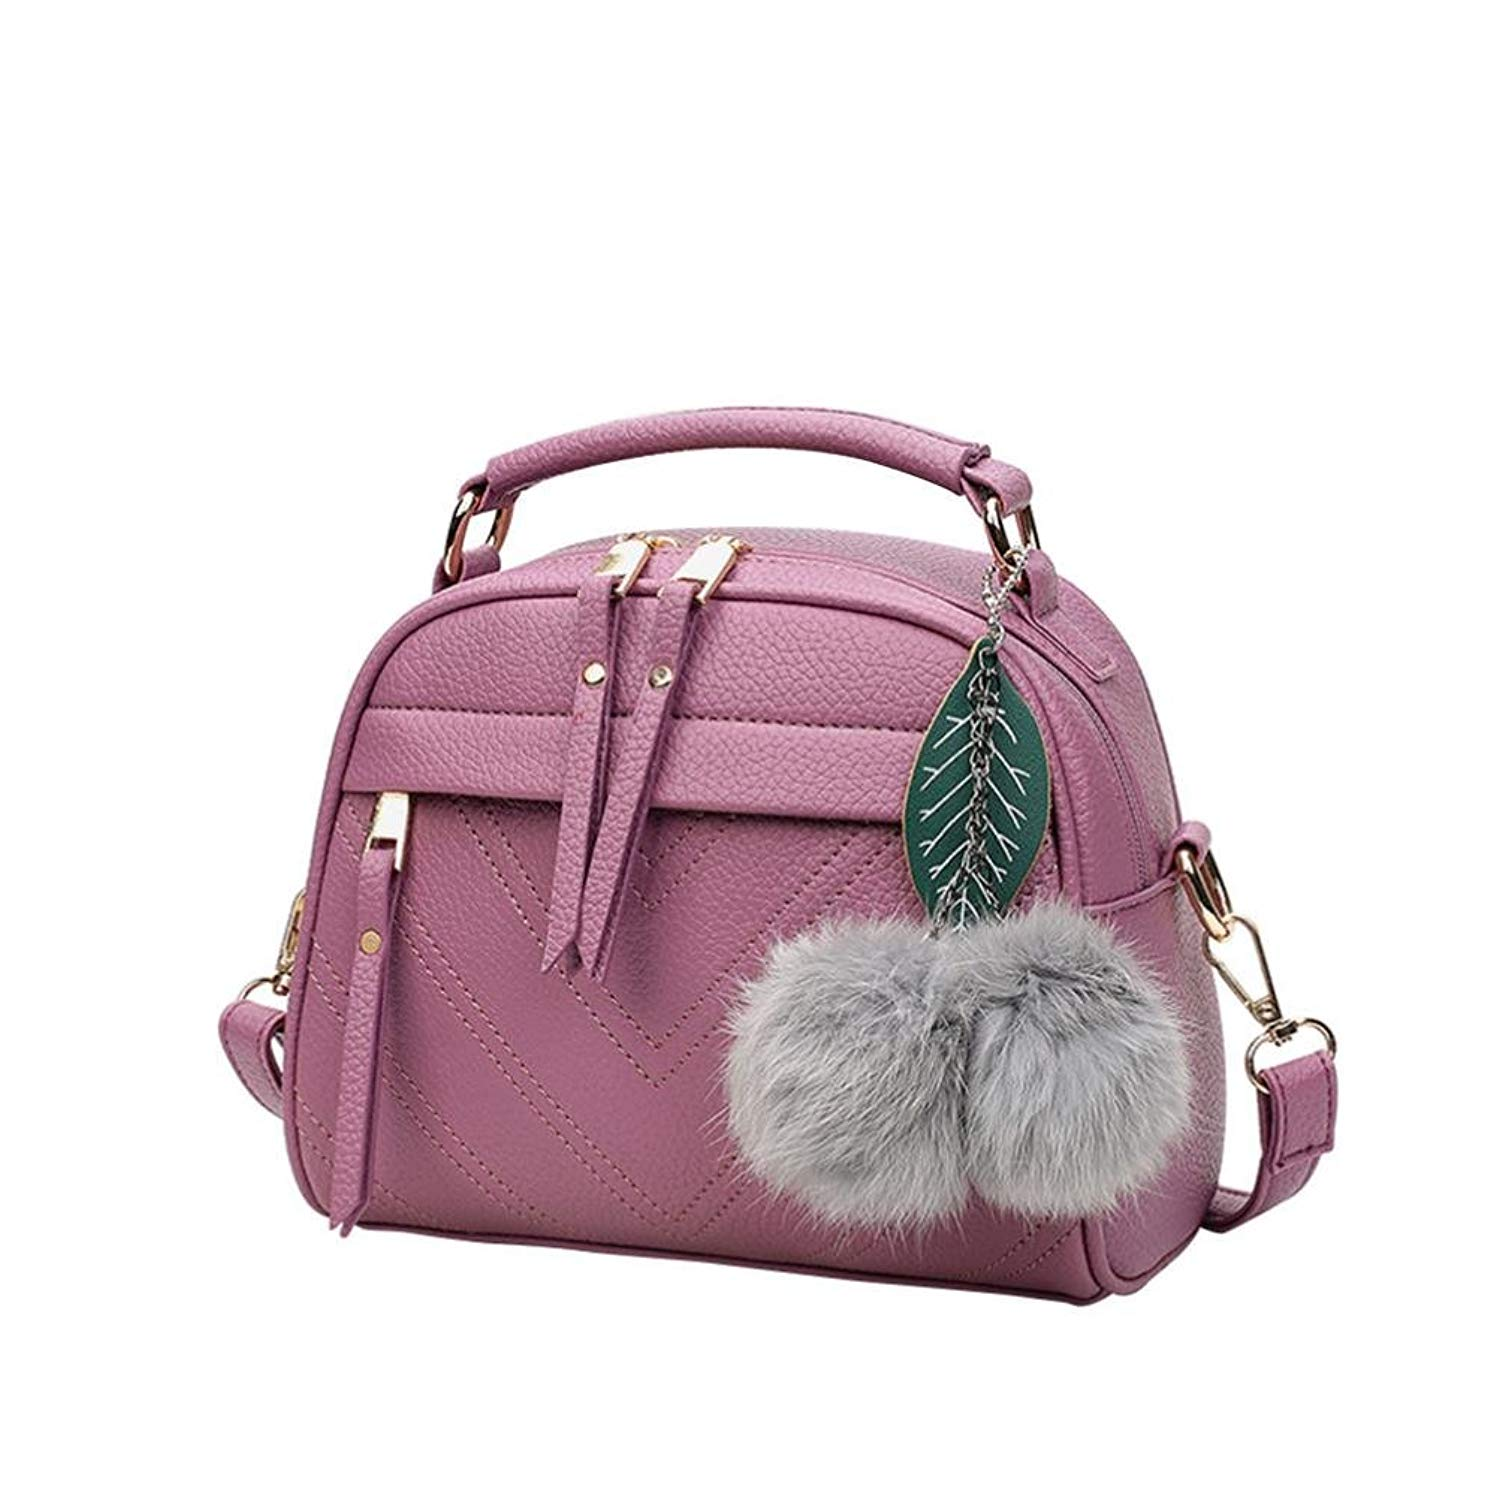 Women Fashion Handbag Ladies Satchel Totes Bag Pom Pom Ball Pendant Shoulder Bag Messenger Crossbody Bag